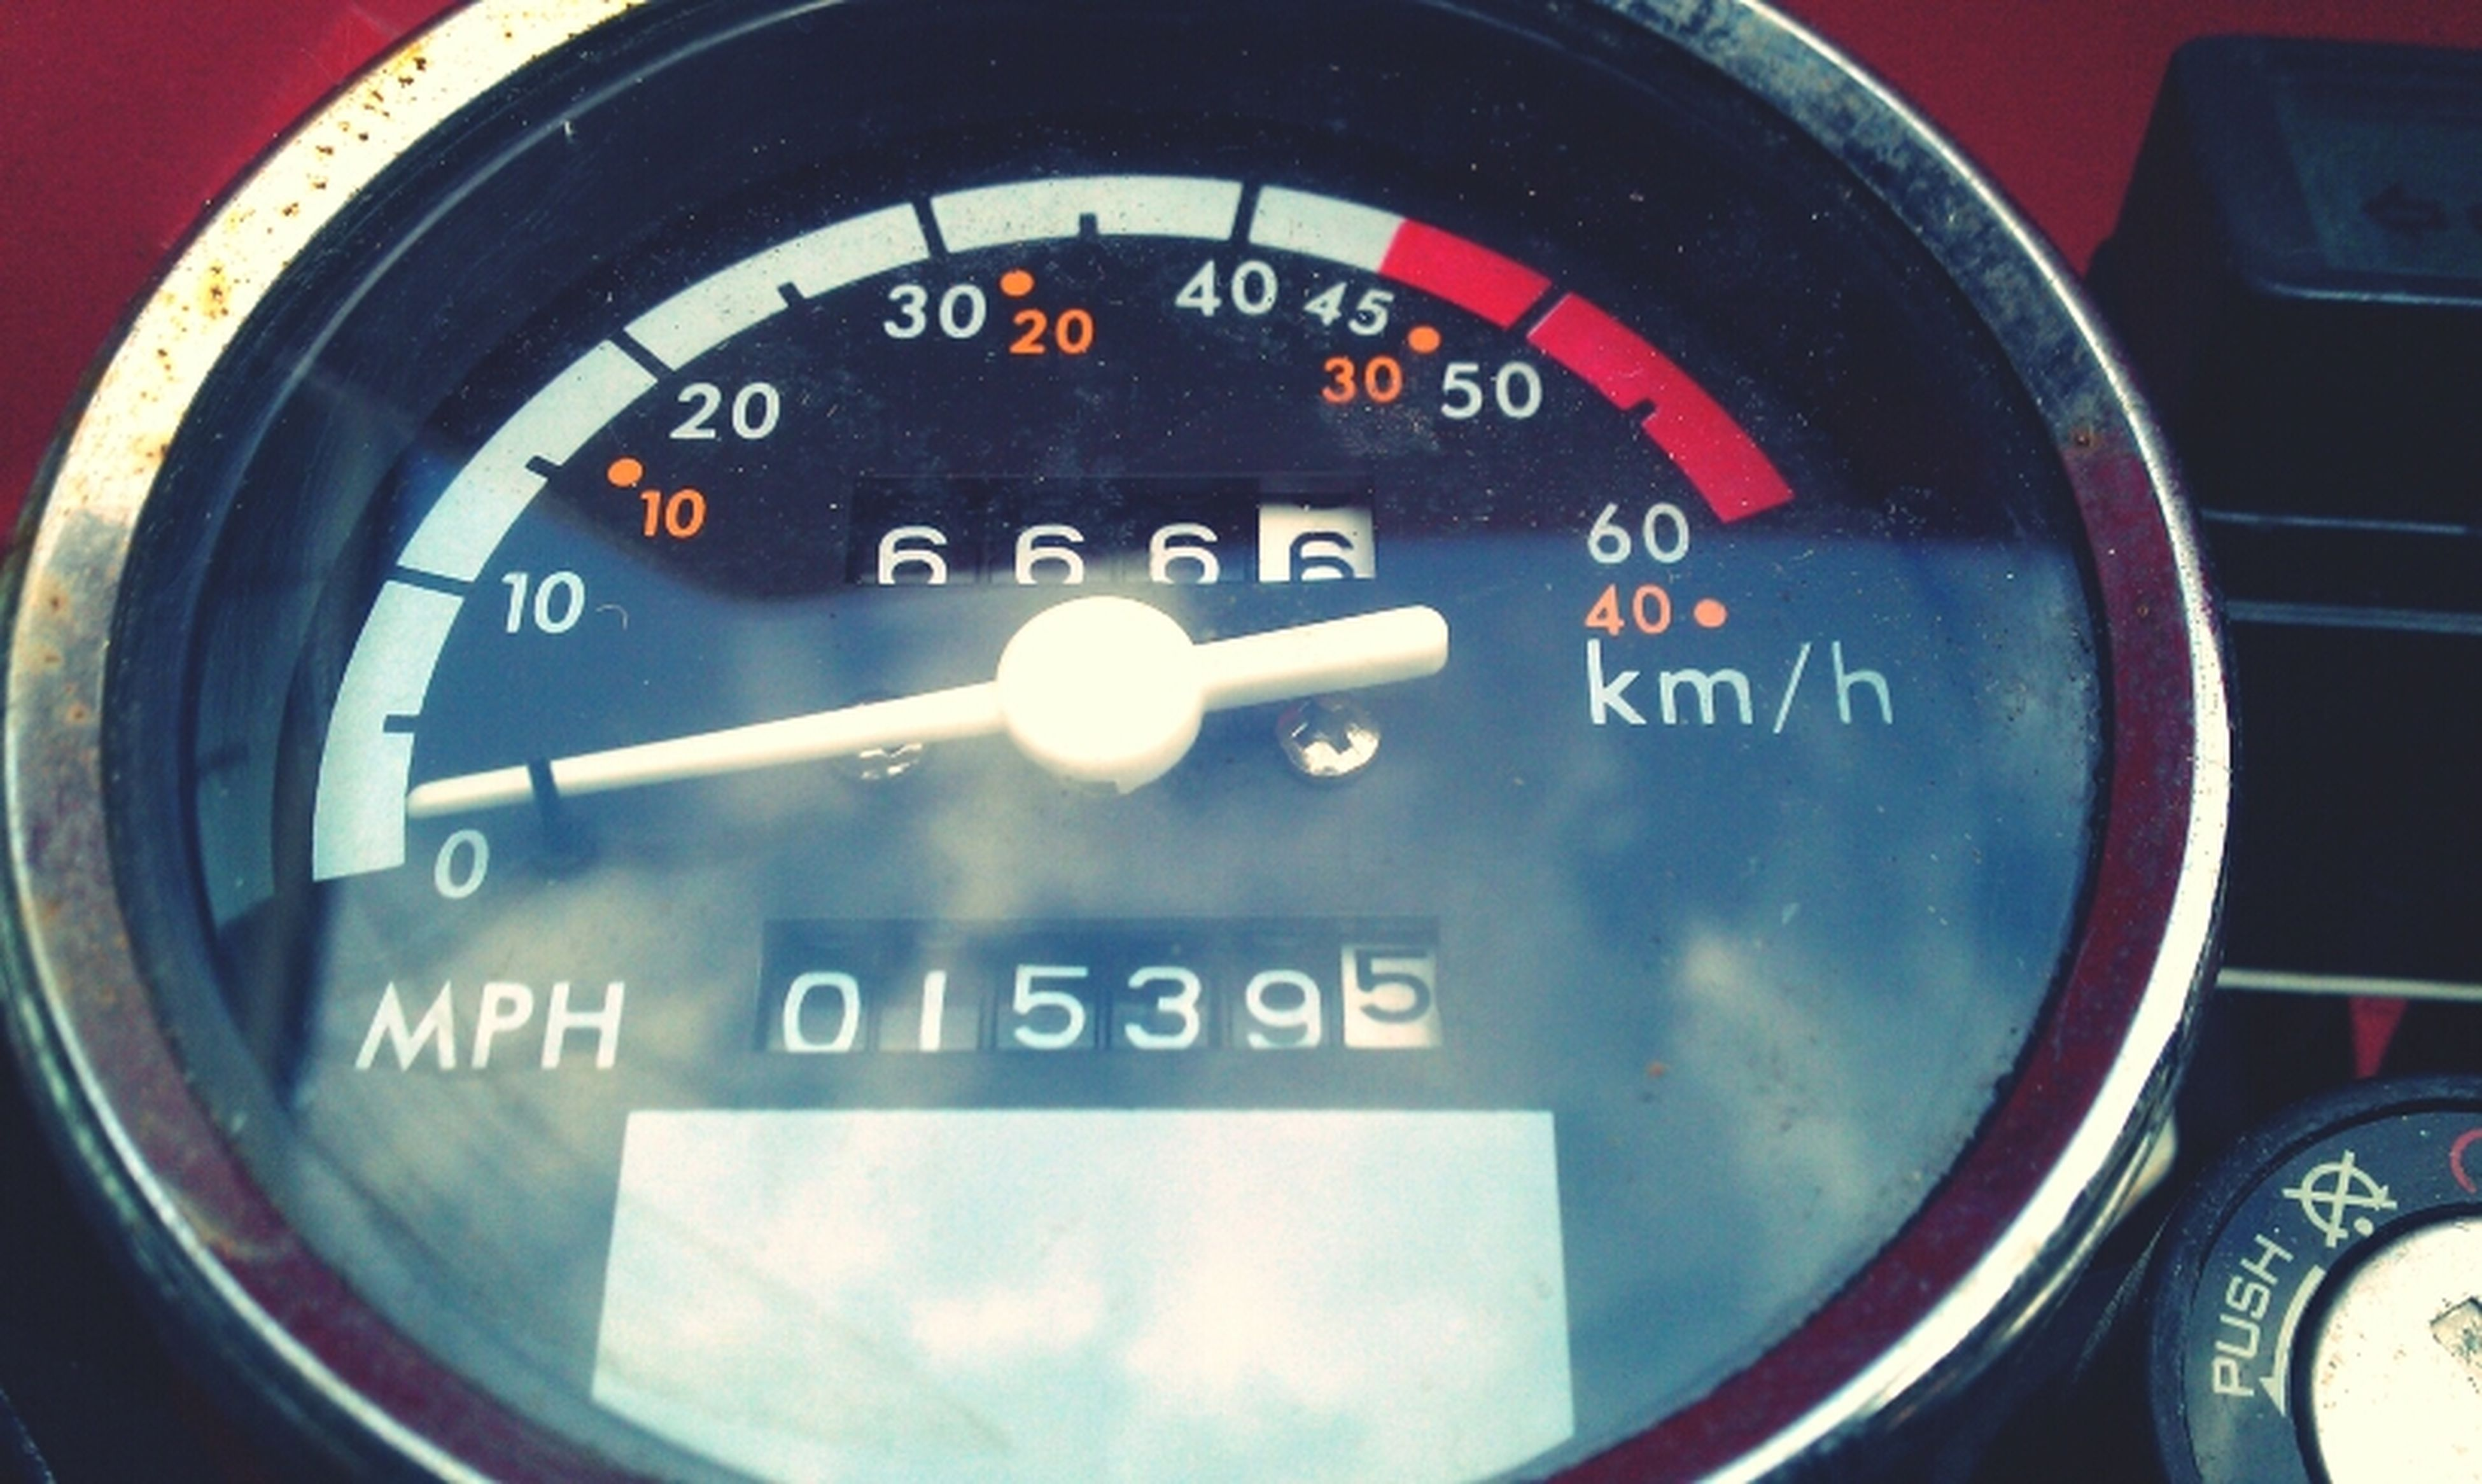 transportation, communication, text, number, mode of transport, western script, close-up, vehicle interior, speedometer, car, land vehicle, dashboard, guidance, travel, technology, indoors, car interior, no people, capital letter, part of